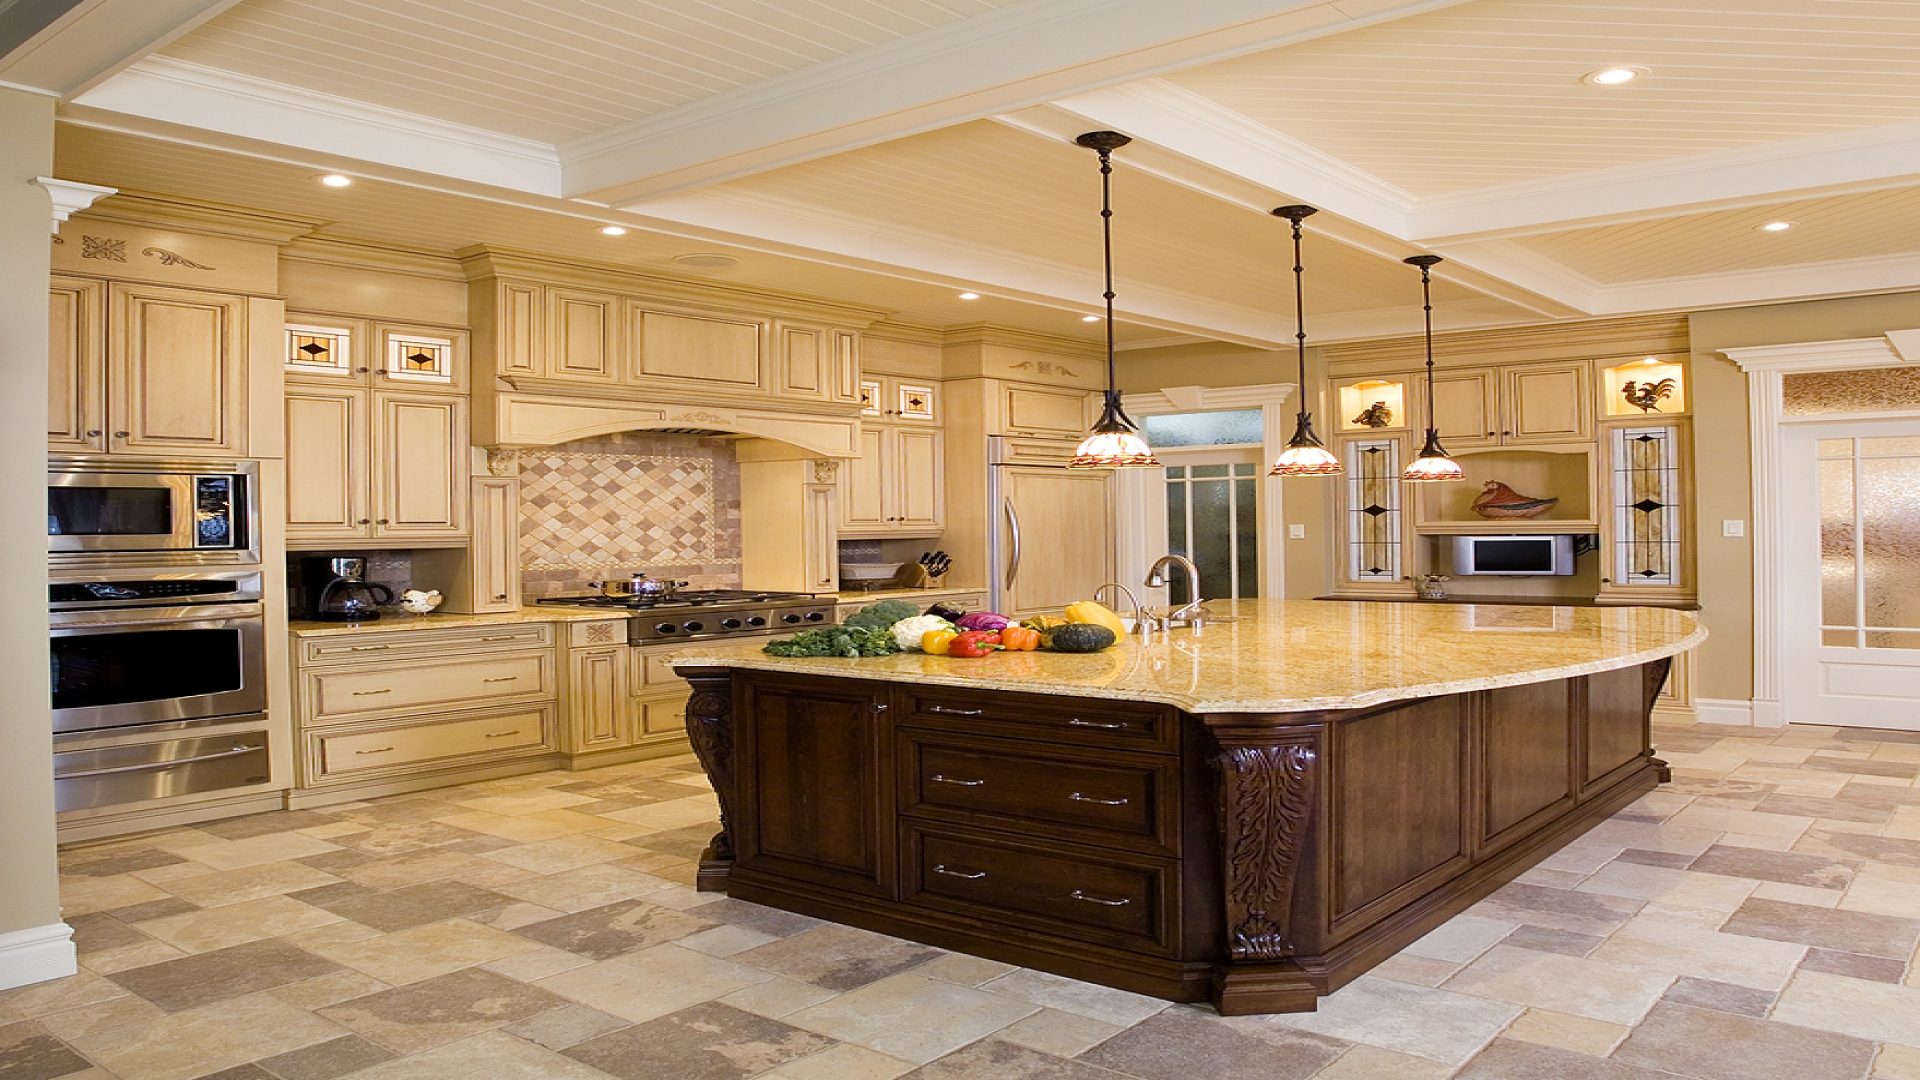 Kitchen remodeling ideas pictures photos for Home renovation ideas